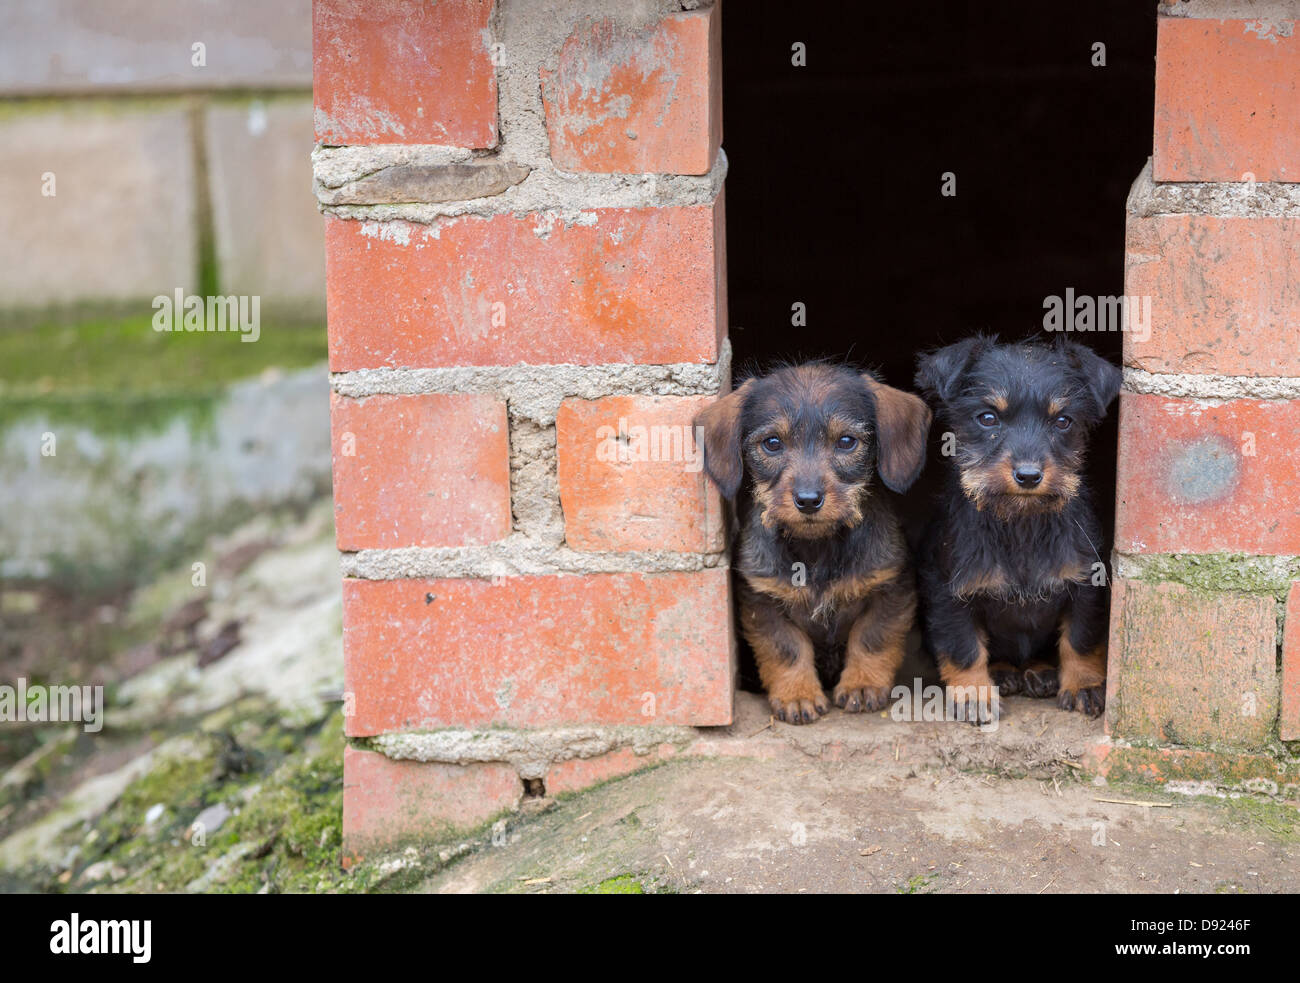 Closeup Of Baby Dachshund Dogs At Home Stock Photo Alamy